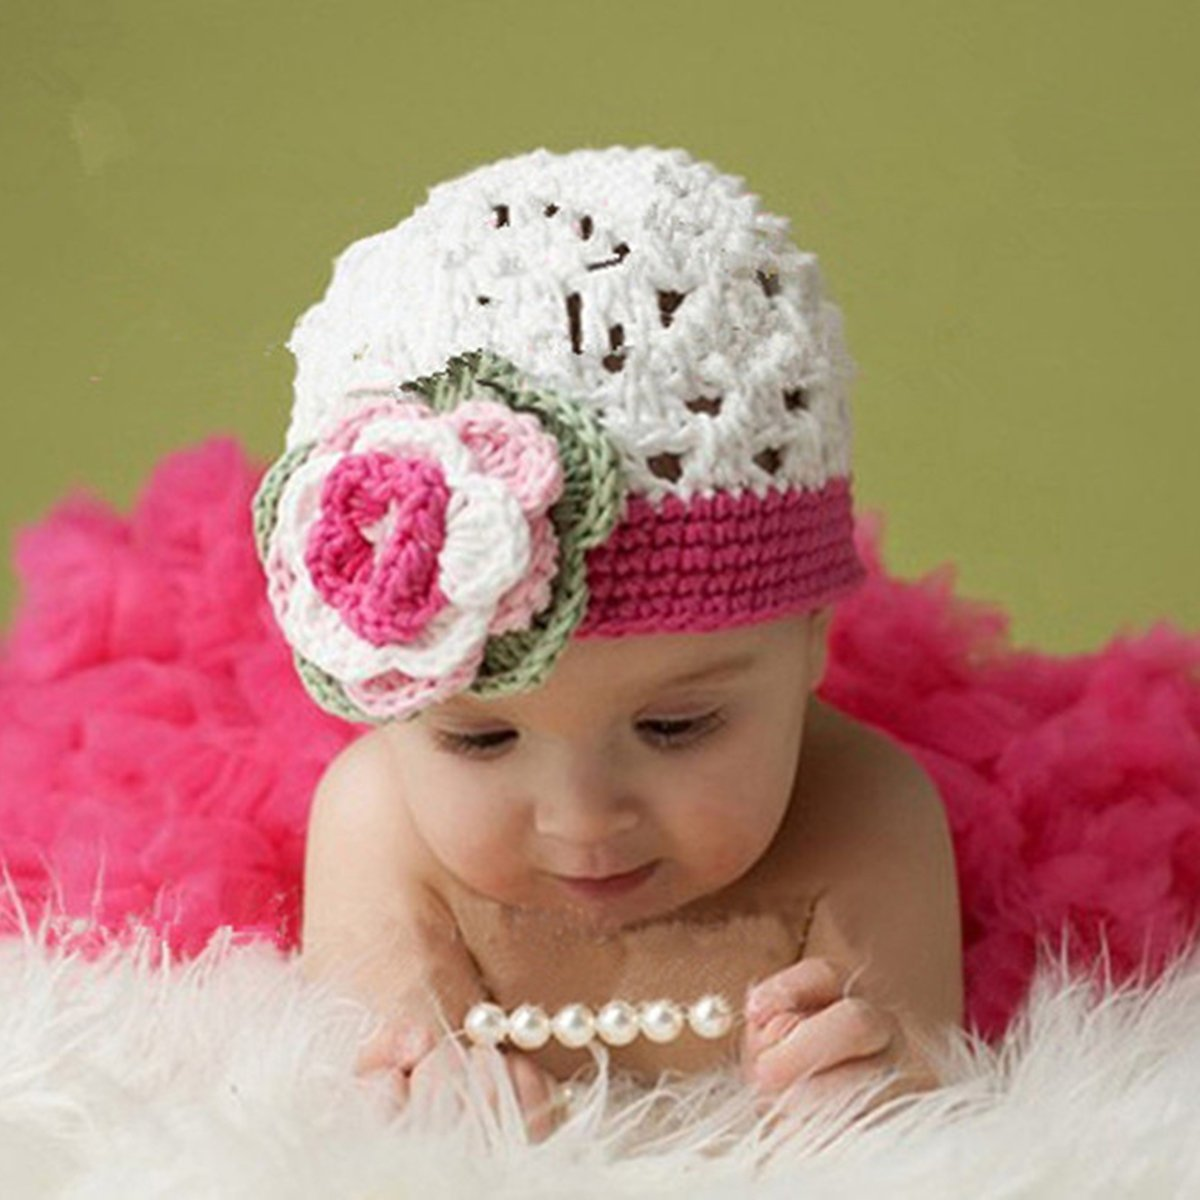 d76178e632e Get Quotations · Pixnor Cute Lace Style Baby Infant Newborn Hand Knitted Crochet  Hat with Skirt Baby Photograph Props